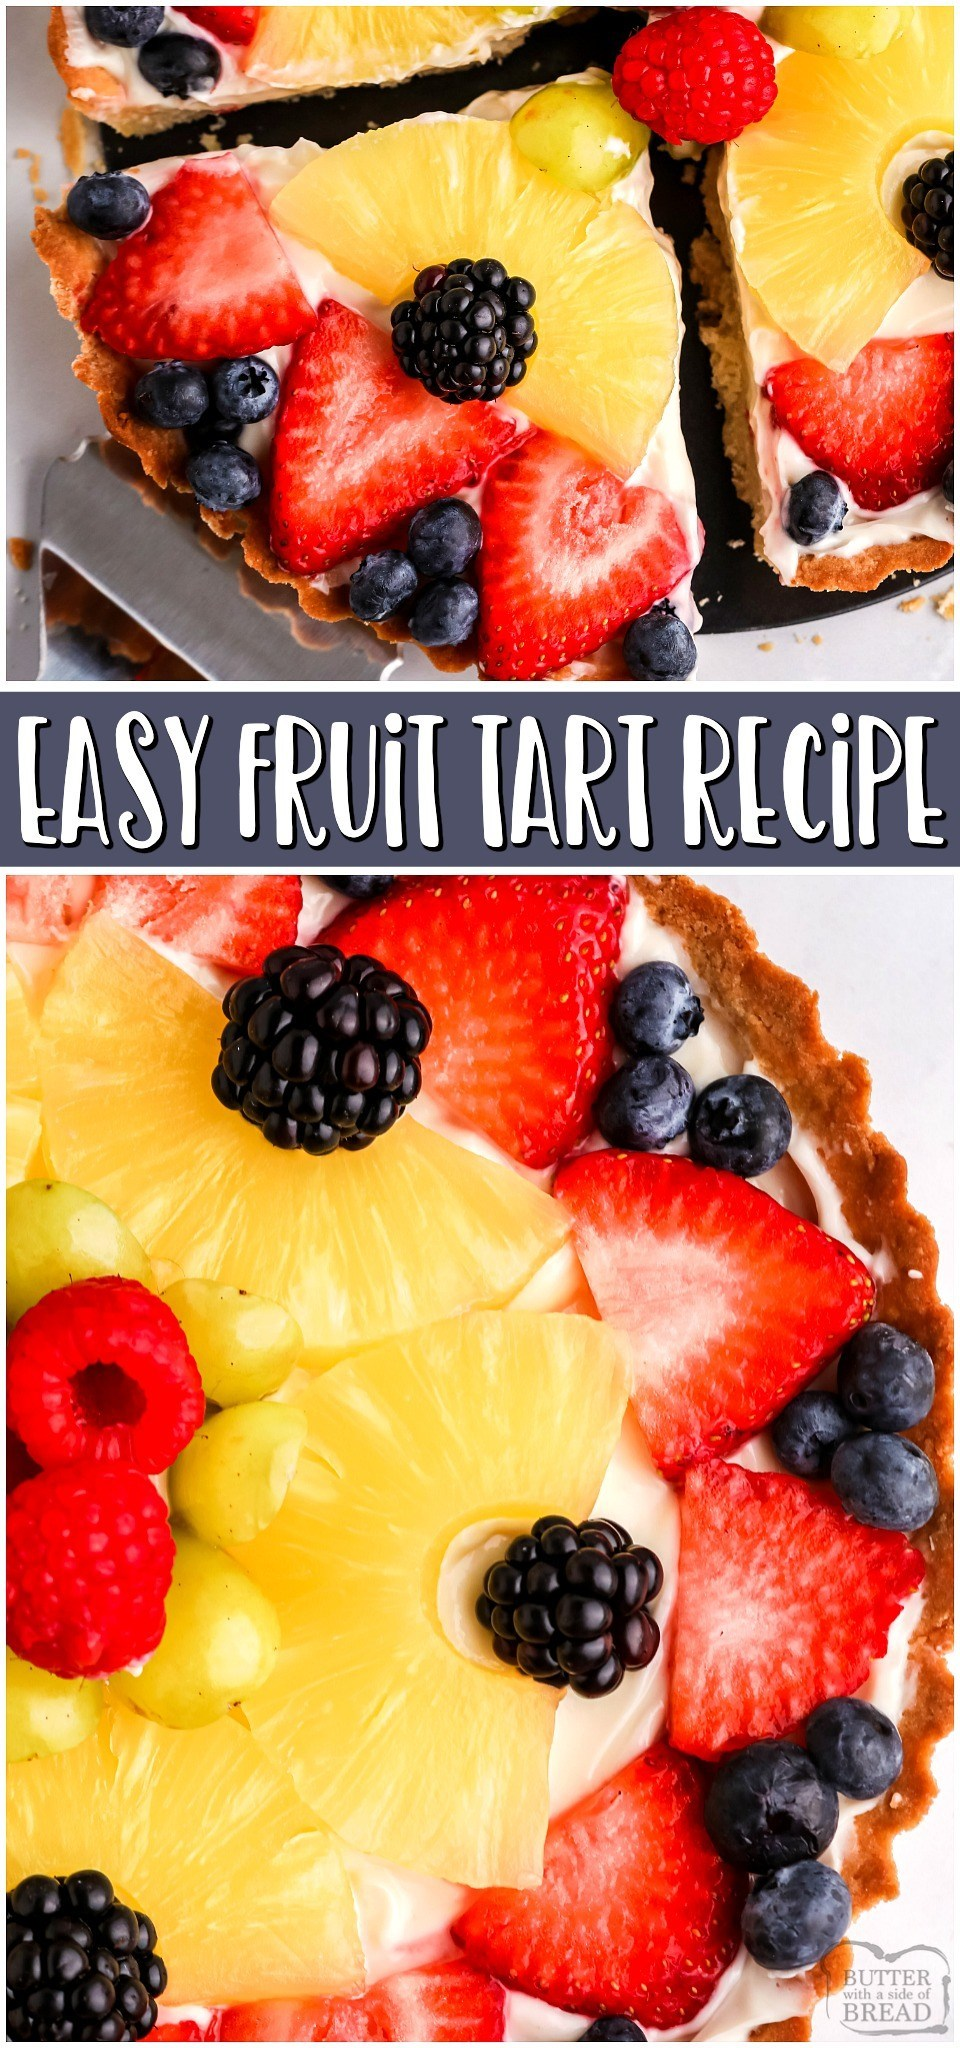 You're going to love it! Easy Fruit Tart made with a buttery crust, sweet cream cheese filling & topped with a variety of fresh fruits and berries! Fruit Tart Recipe easy enough for anyone to make!